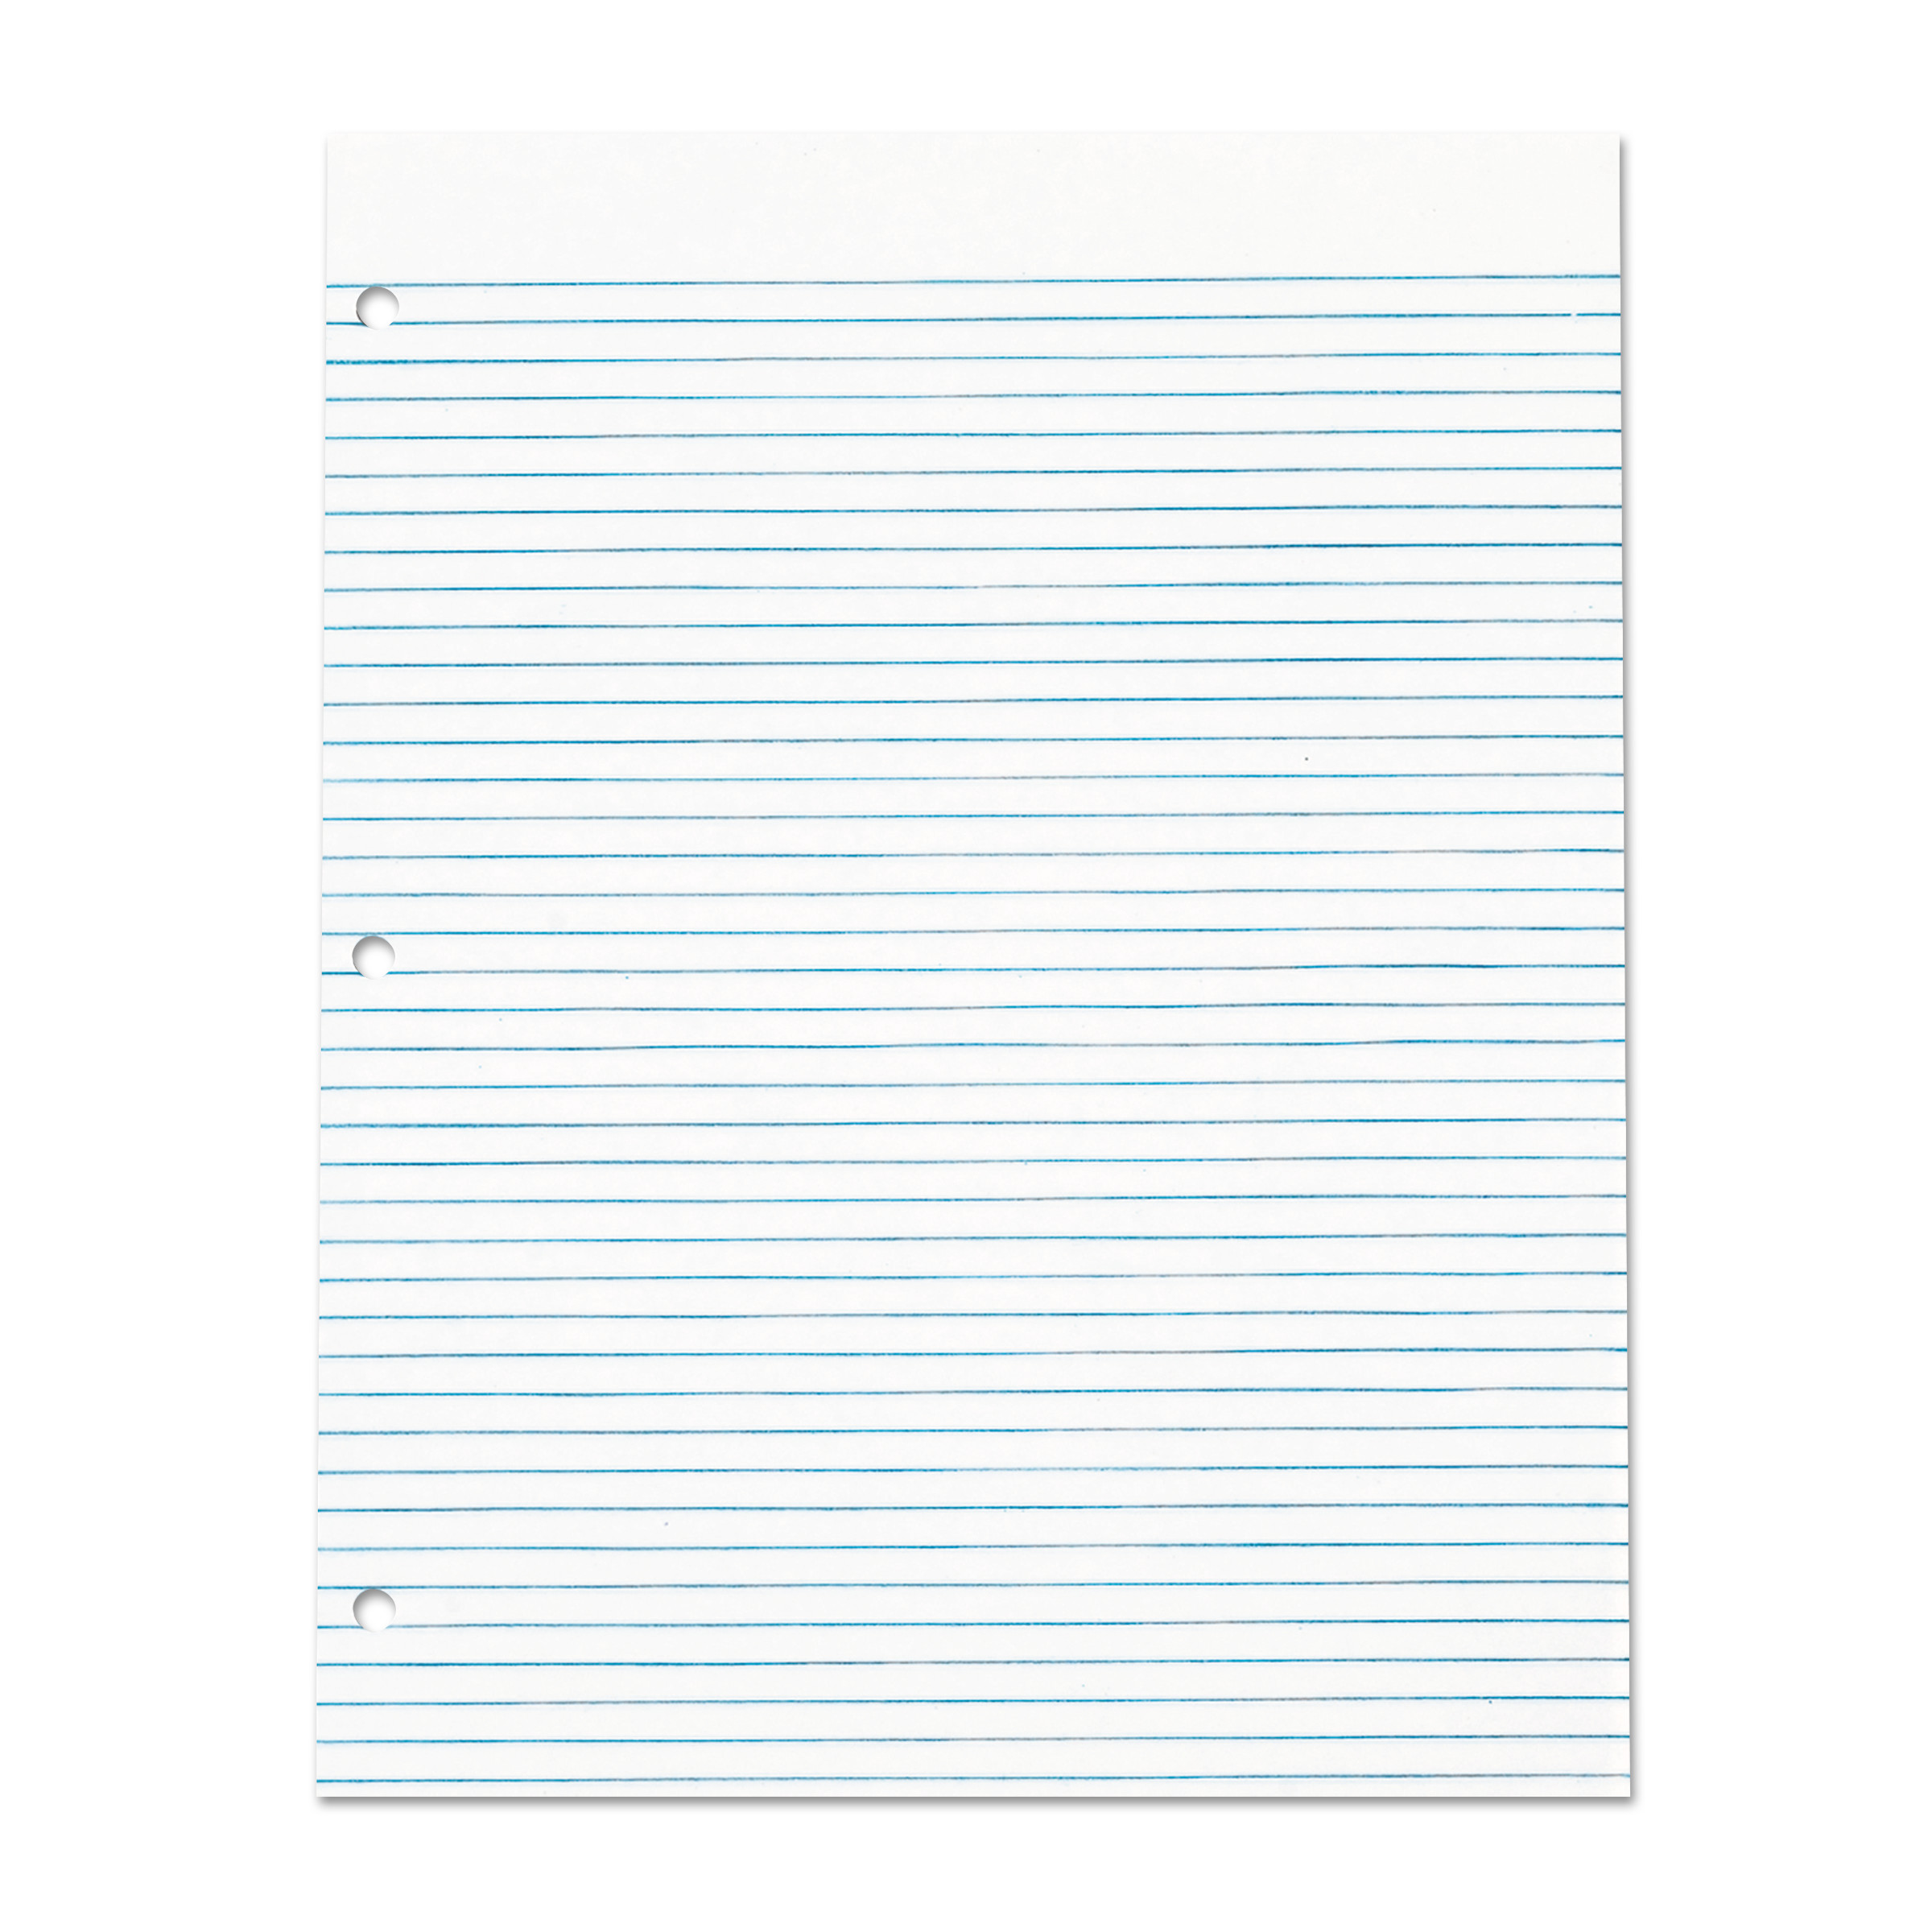 TOPS Three Hole Punched Pad, Narrow Rule, 8 1/2 x 11, White, 50 Sheets/Pack, Dz. -TOP7521